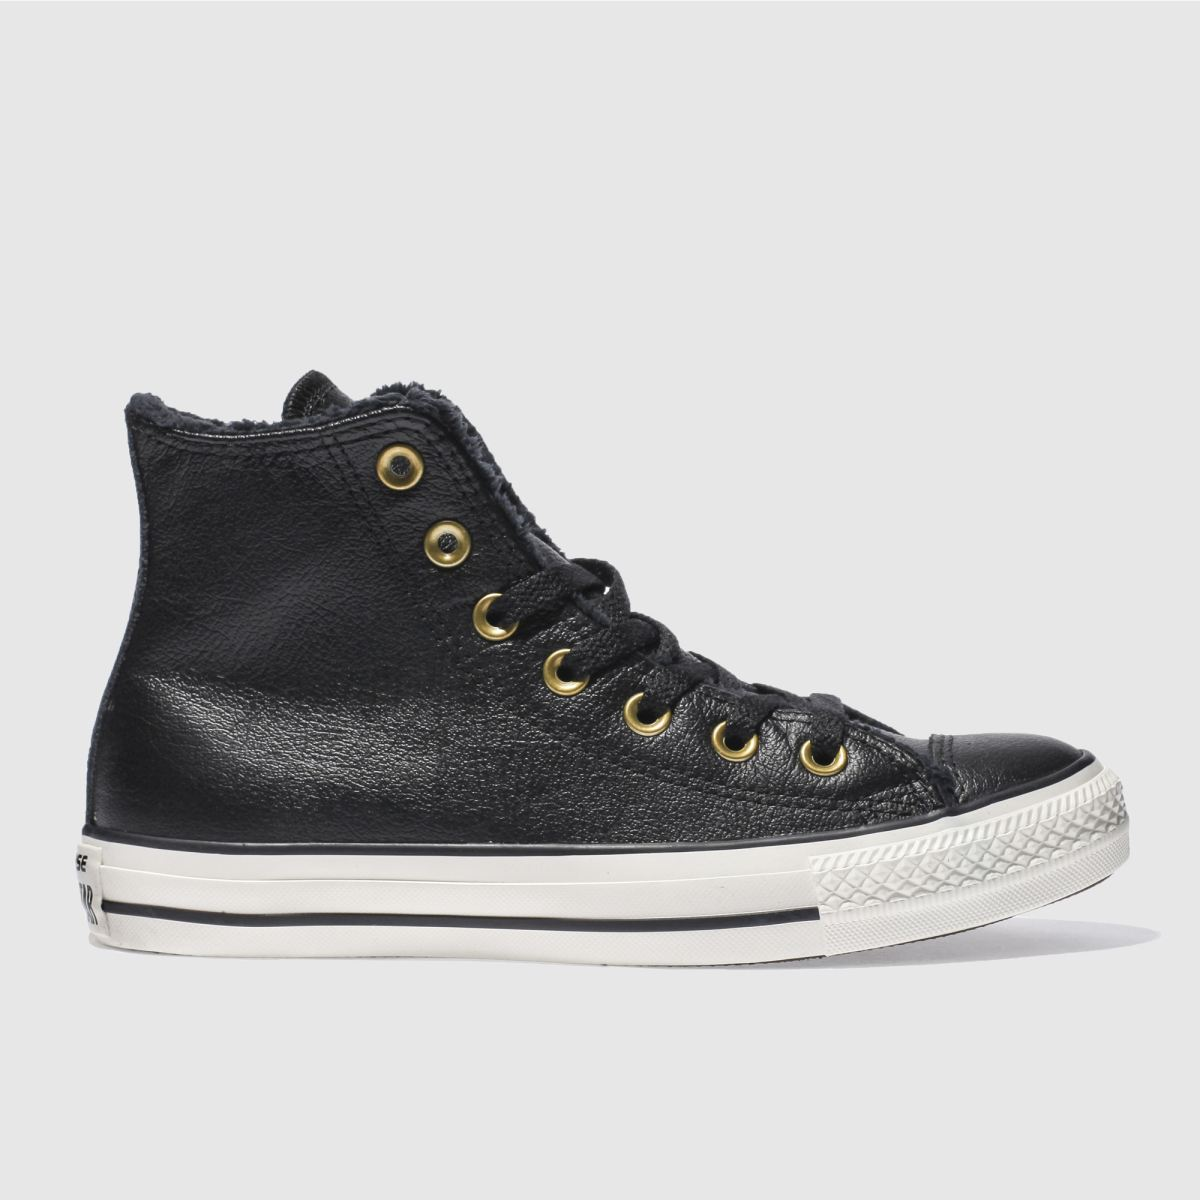 Converse Black Leather Faux Fur Lined Hi Trainers